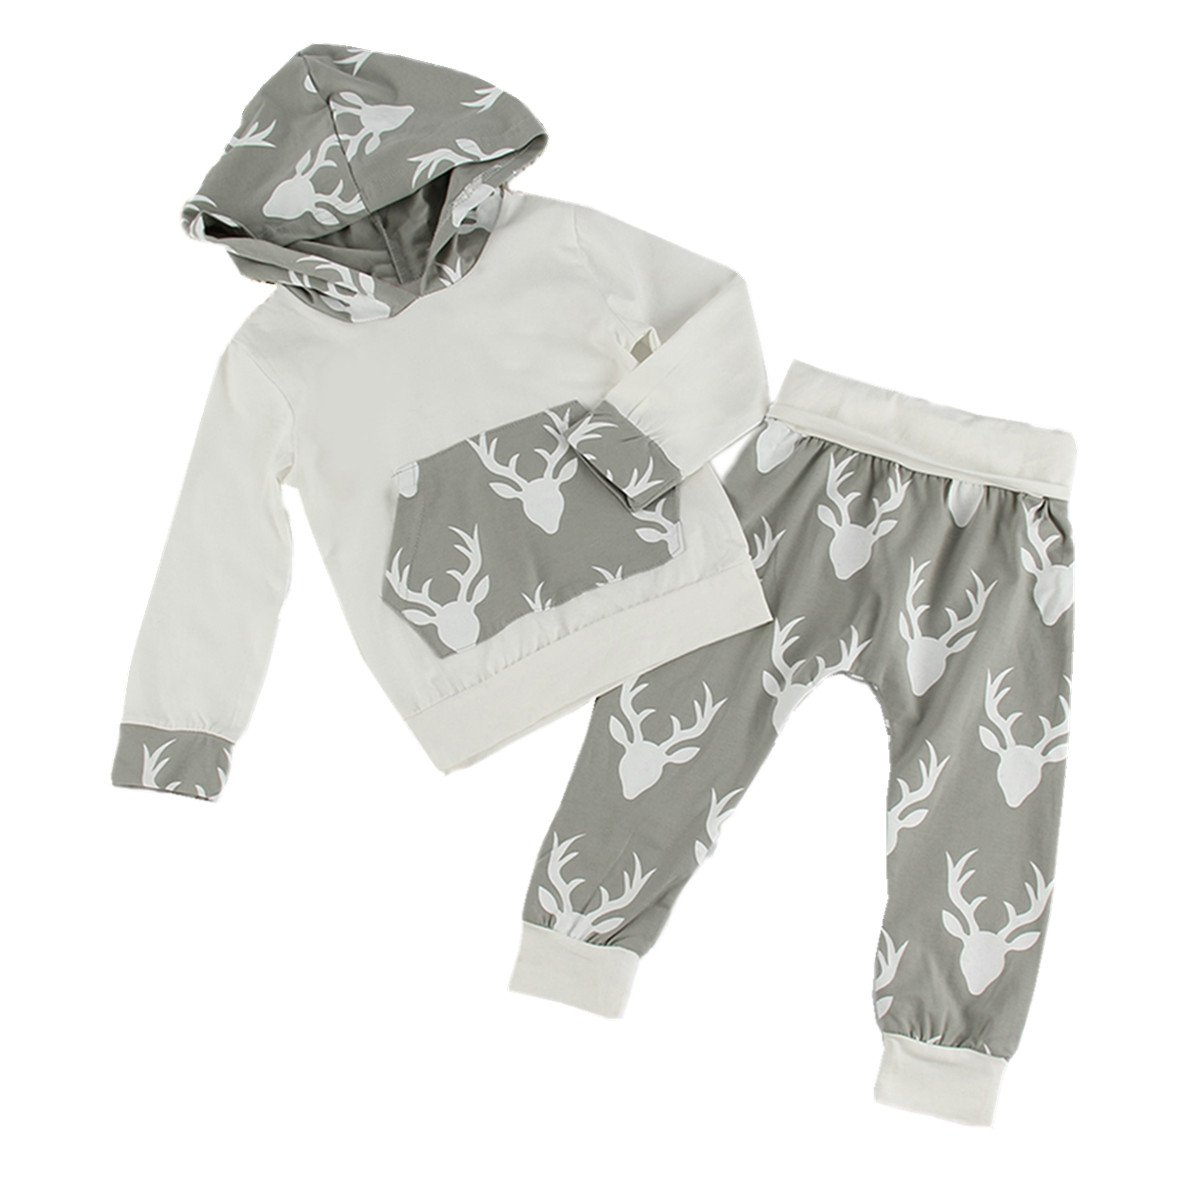 Puseky Newborn Baby Boy Girl Elf Deer Hooded Shirt & Pants Clothes Outfits Set